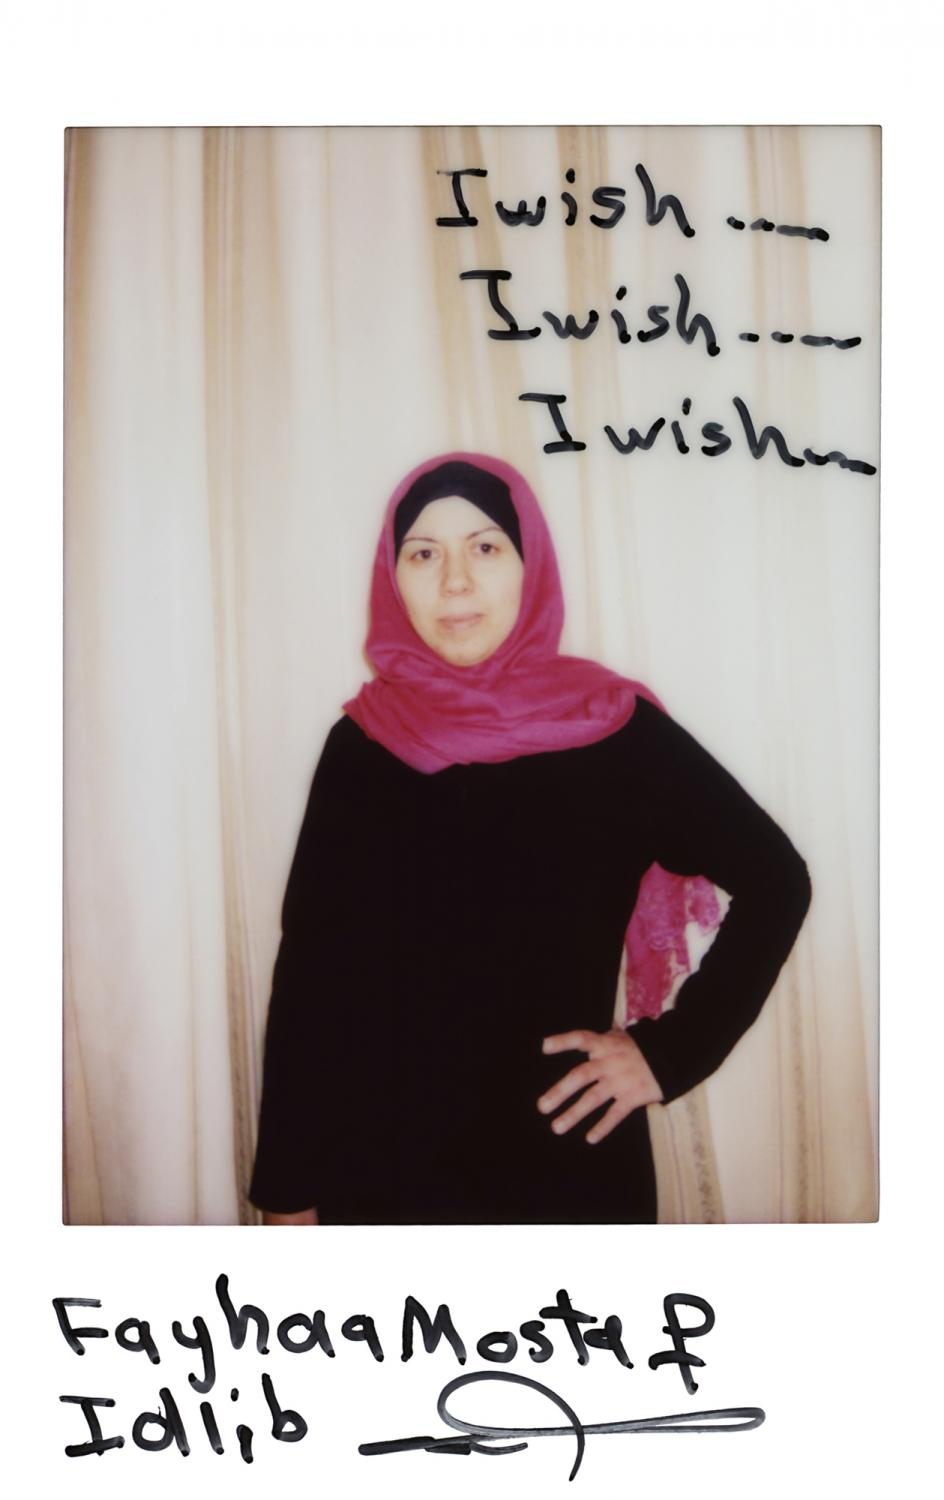 »I wish…I wish….I wish… Fayhanaa Mostaf, Idlib« Izmir, Turkey, April 2016